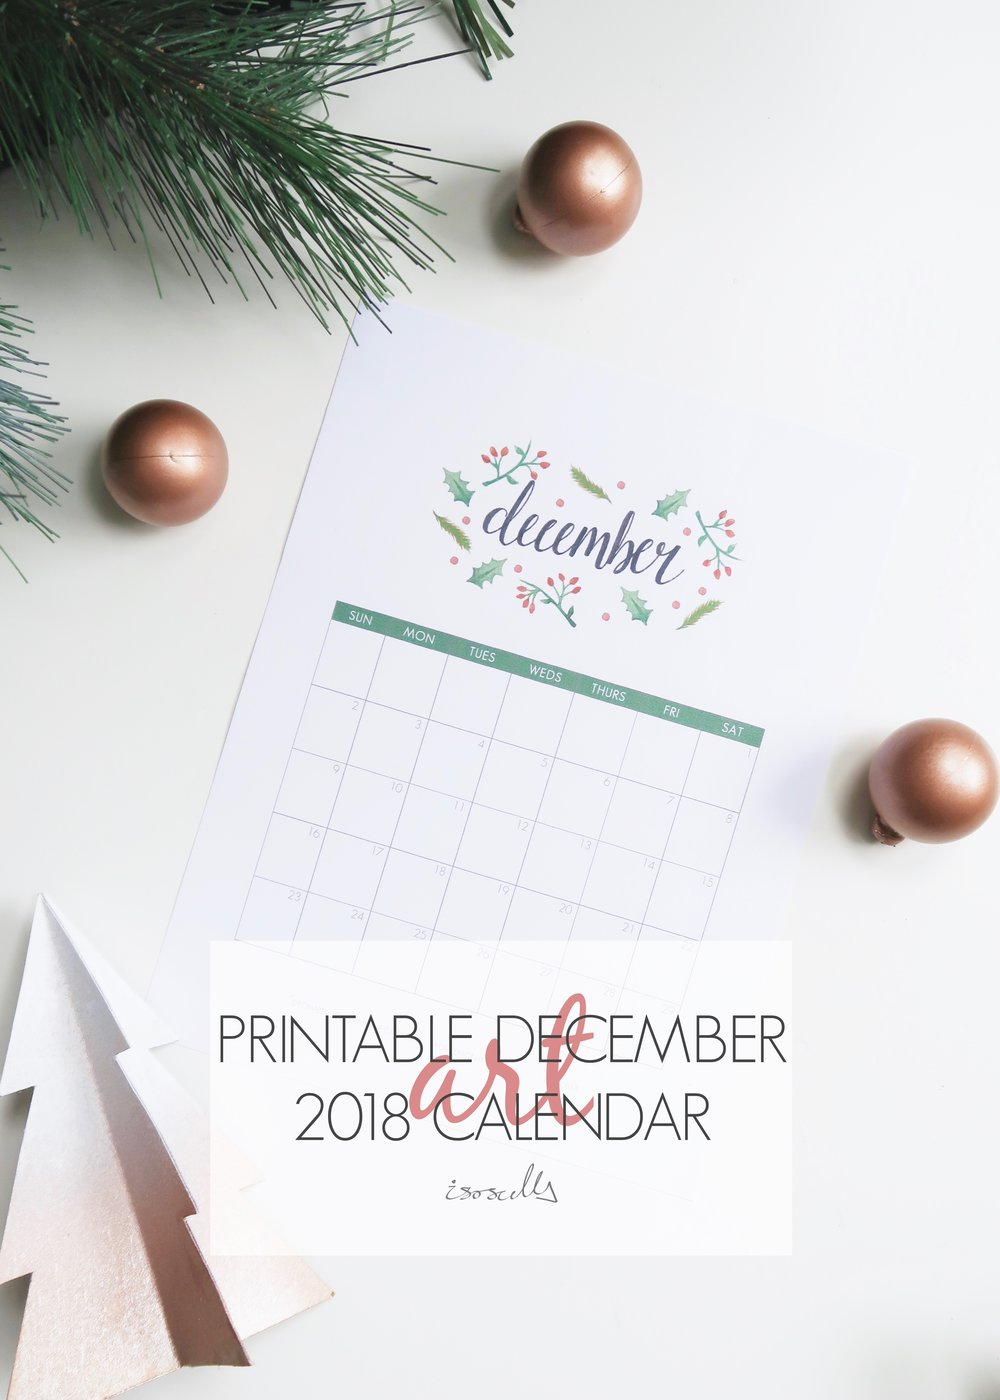 Printable December 2018 Calendar by Isoscella